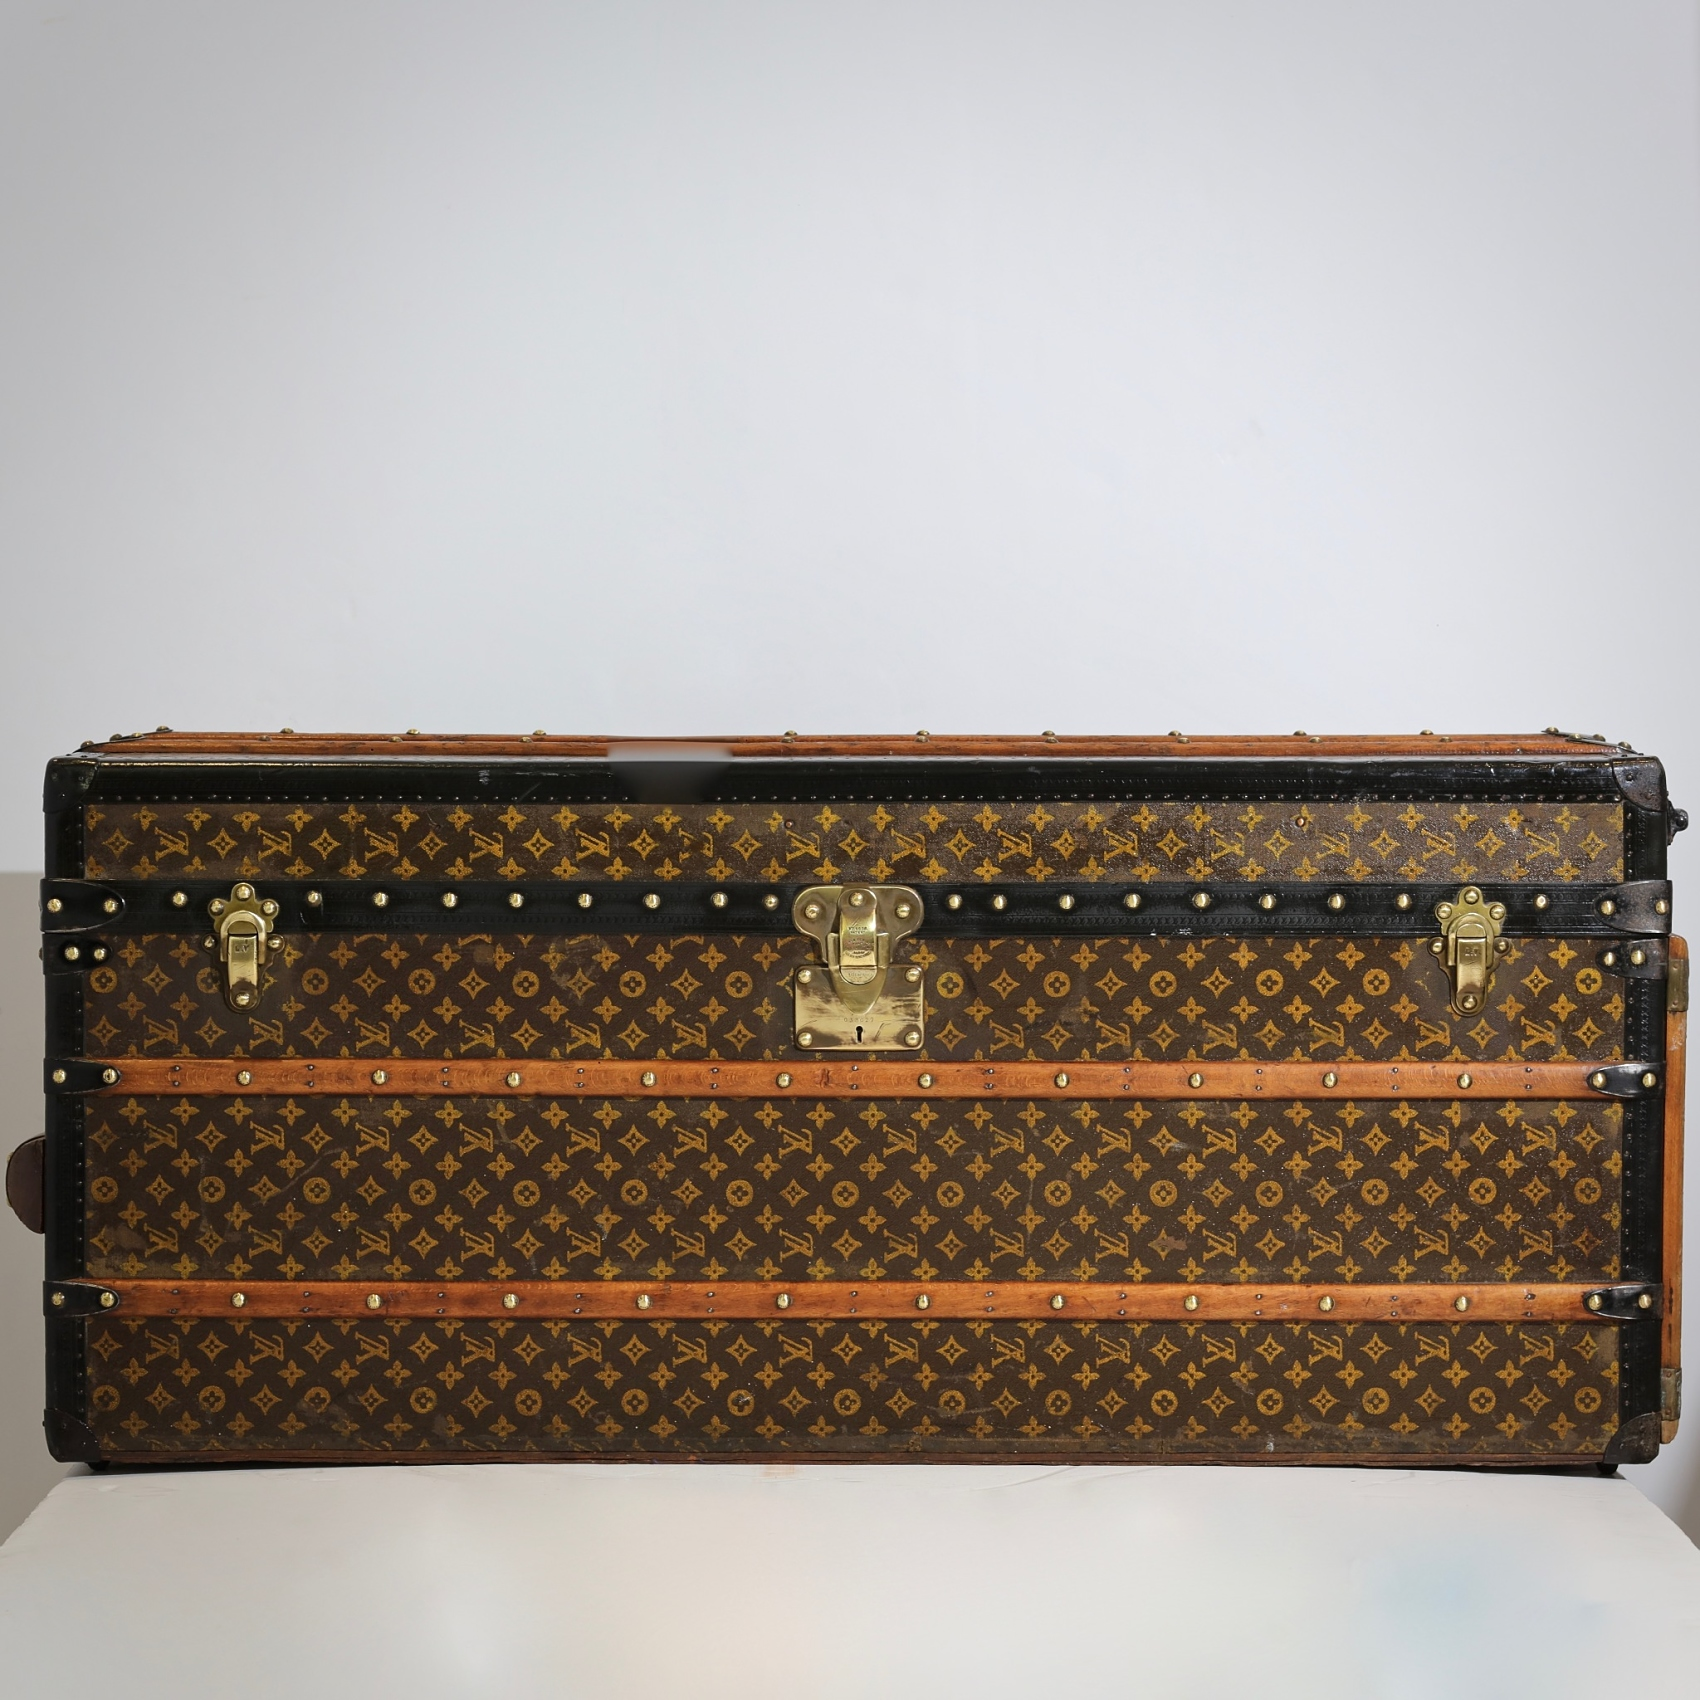 the-well-traveled-trunk-louis-vuitton-thumbnail-product-5680